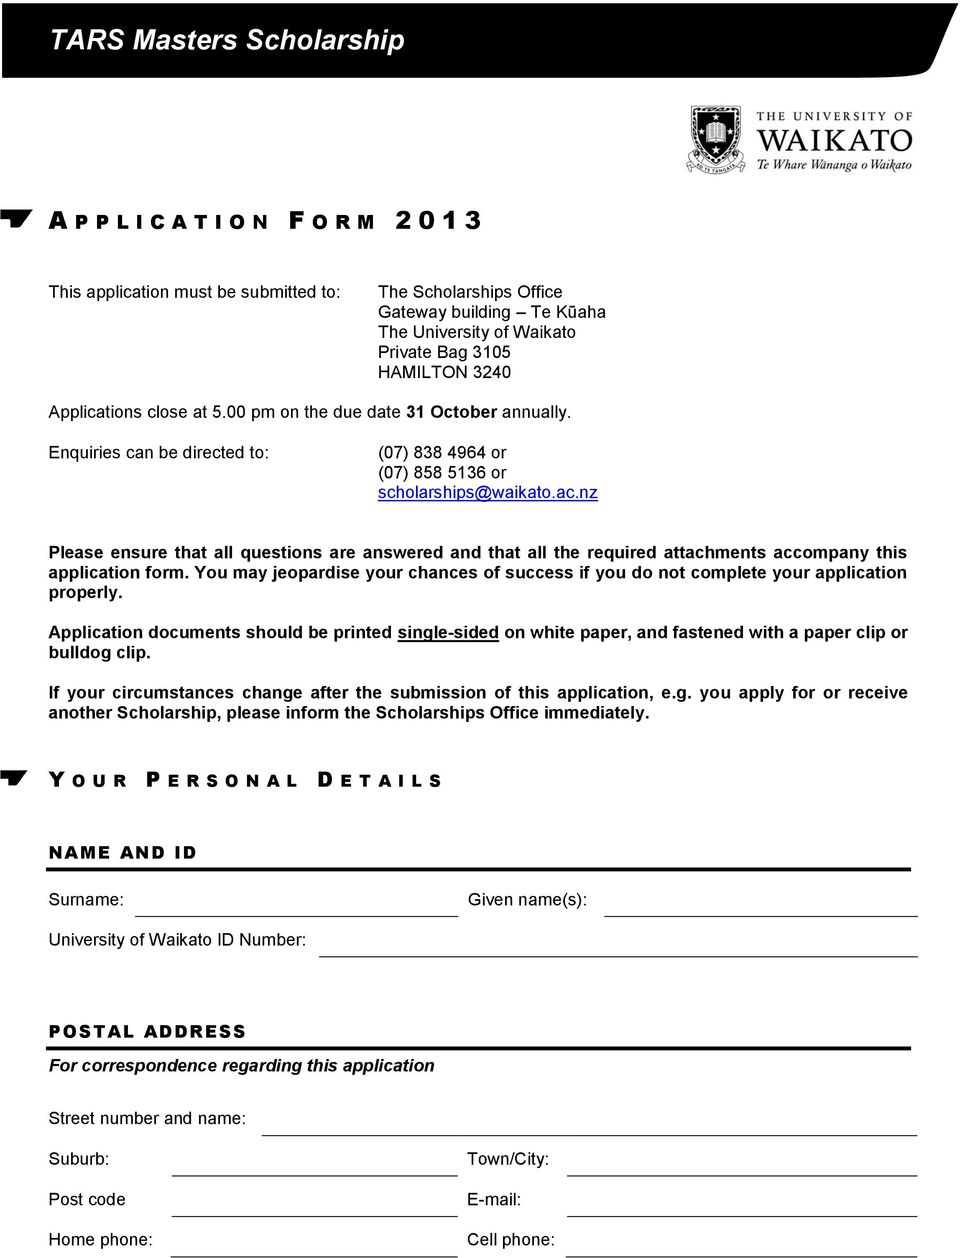 nz Please ensure that all questions are answered and that all the required attachments accompany this application form.